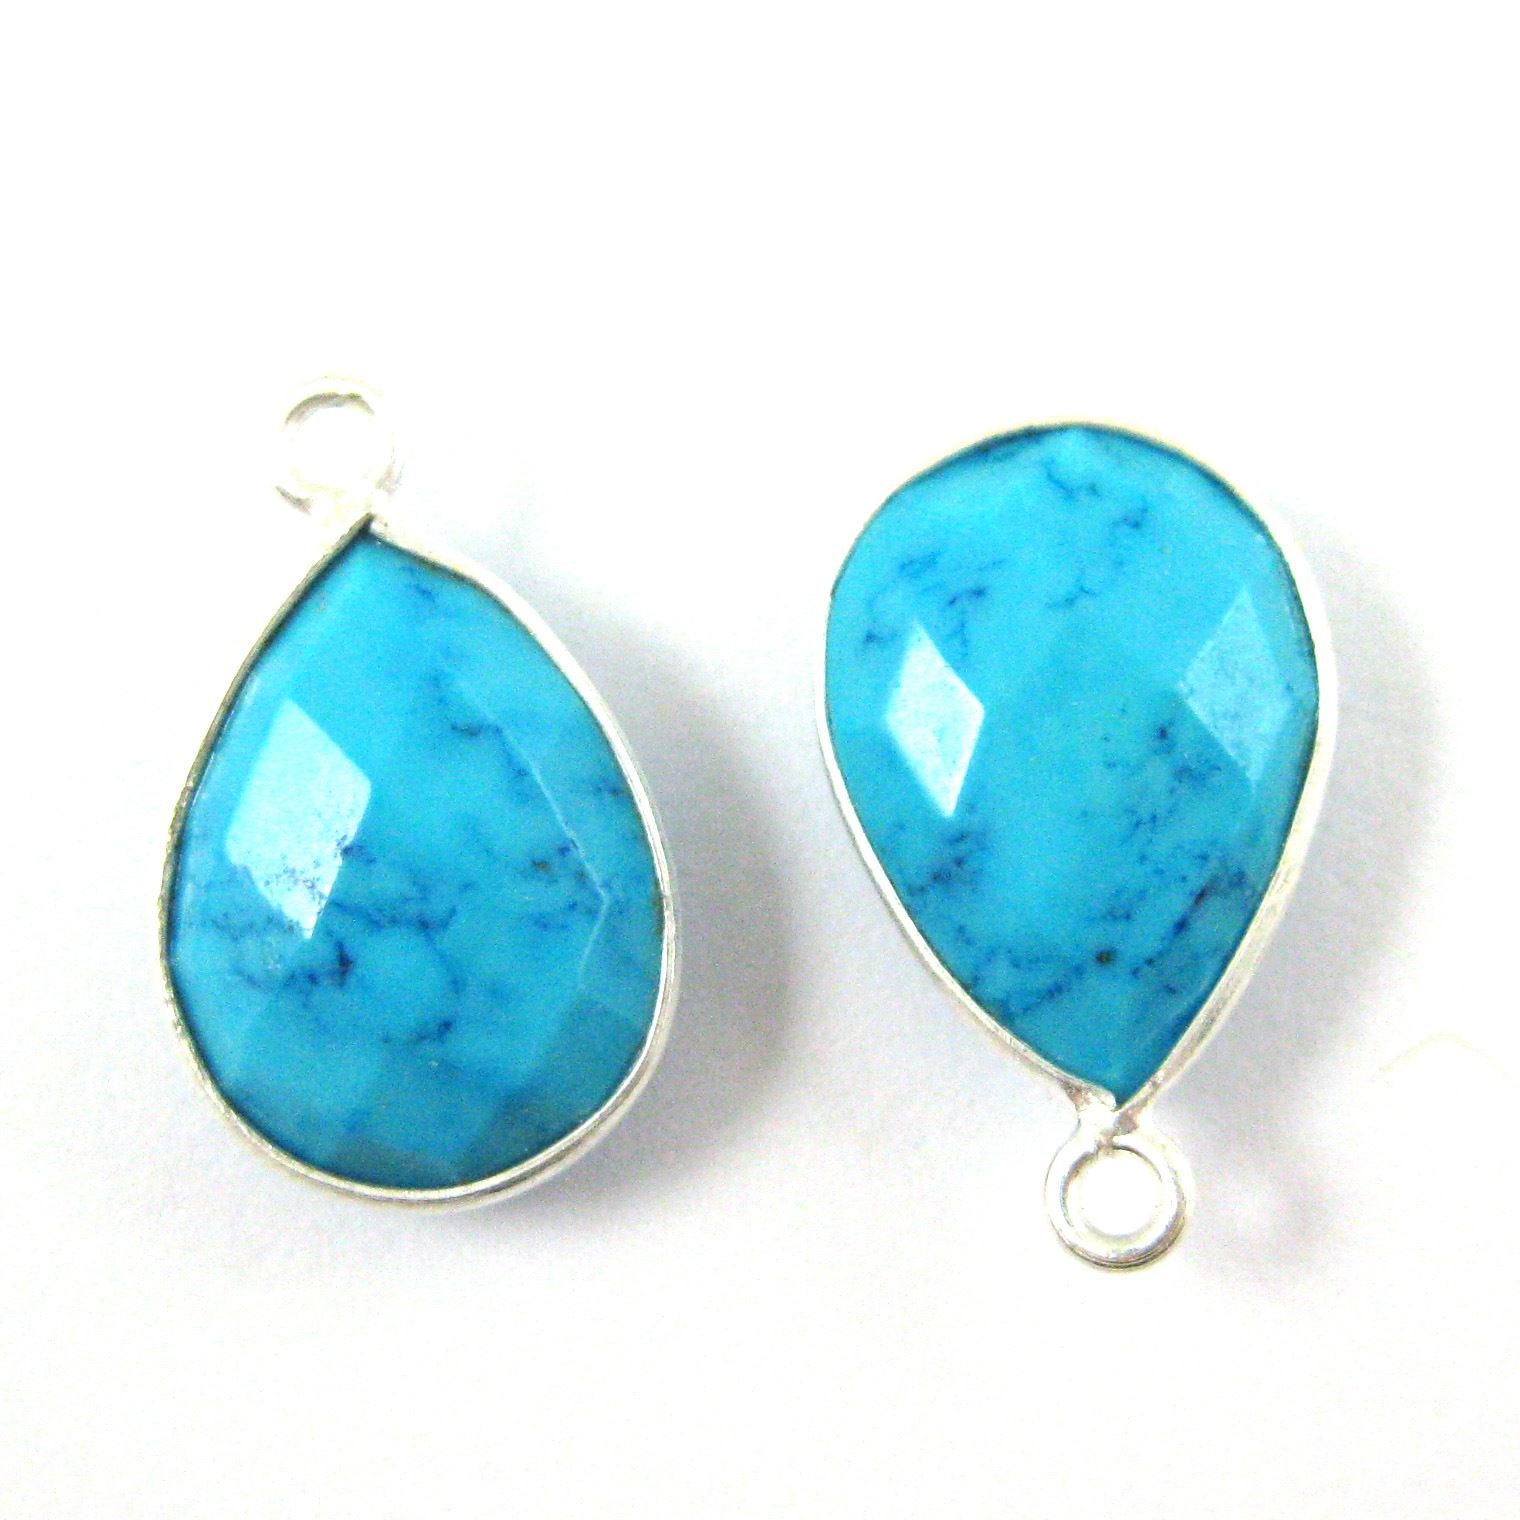 Bezel Gemstone Pendant -Sterling Silver Gem- 10x14mm Faceted Small Teardop Shape - Turquoise (sold per 2 pieces)